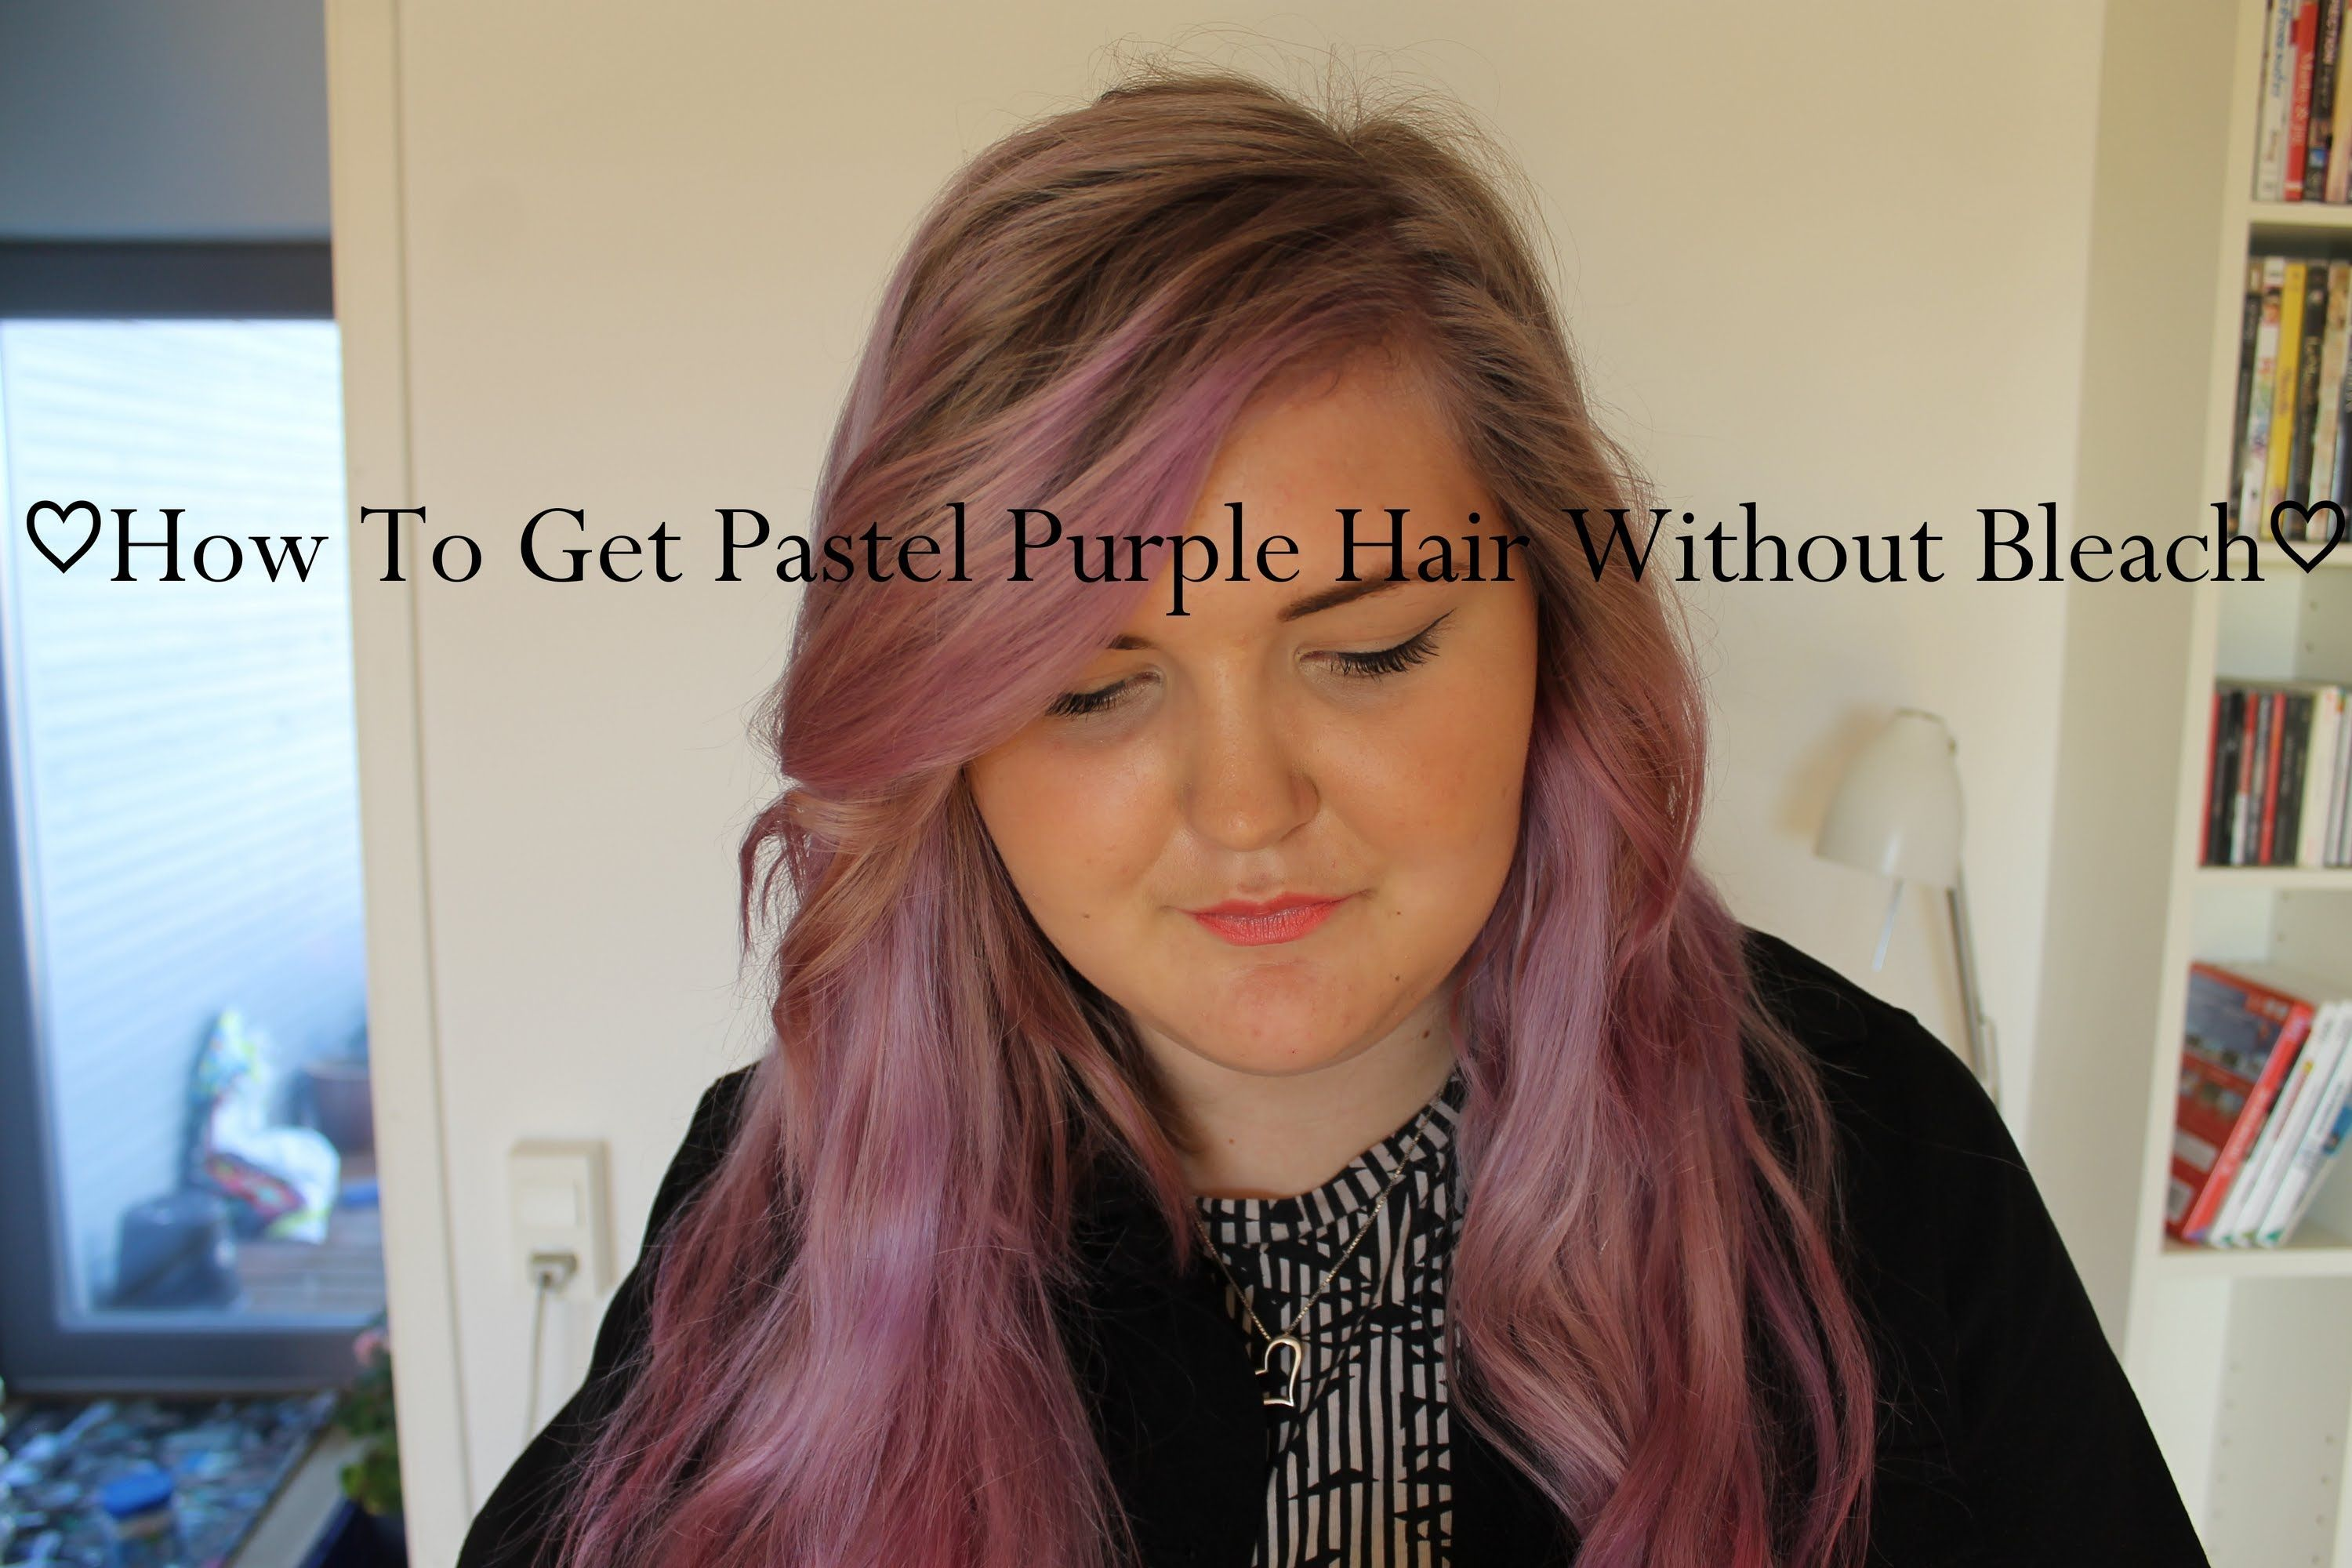 How To Get Pastel Purple Hair Without Bleaching Your Hair Blonde Hair Purple Hair Without Bleaching Pastel Purple Hair Purple Hair